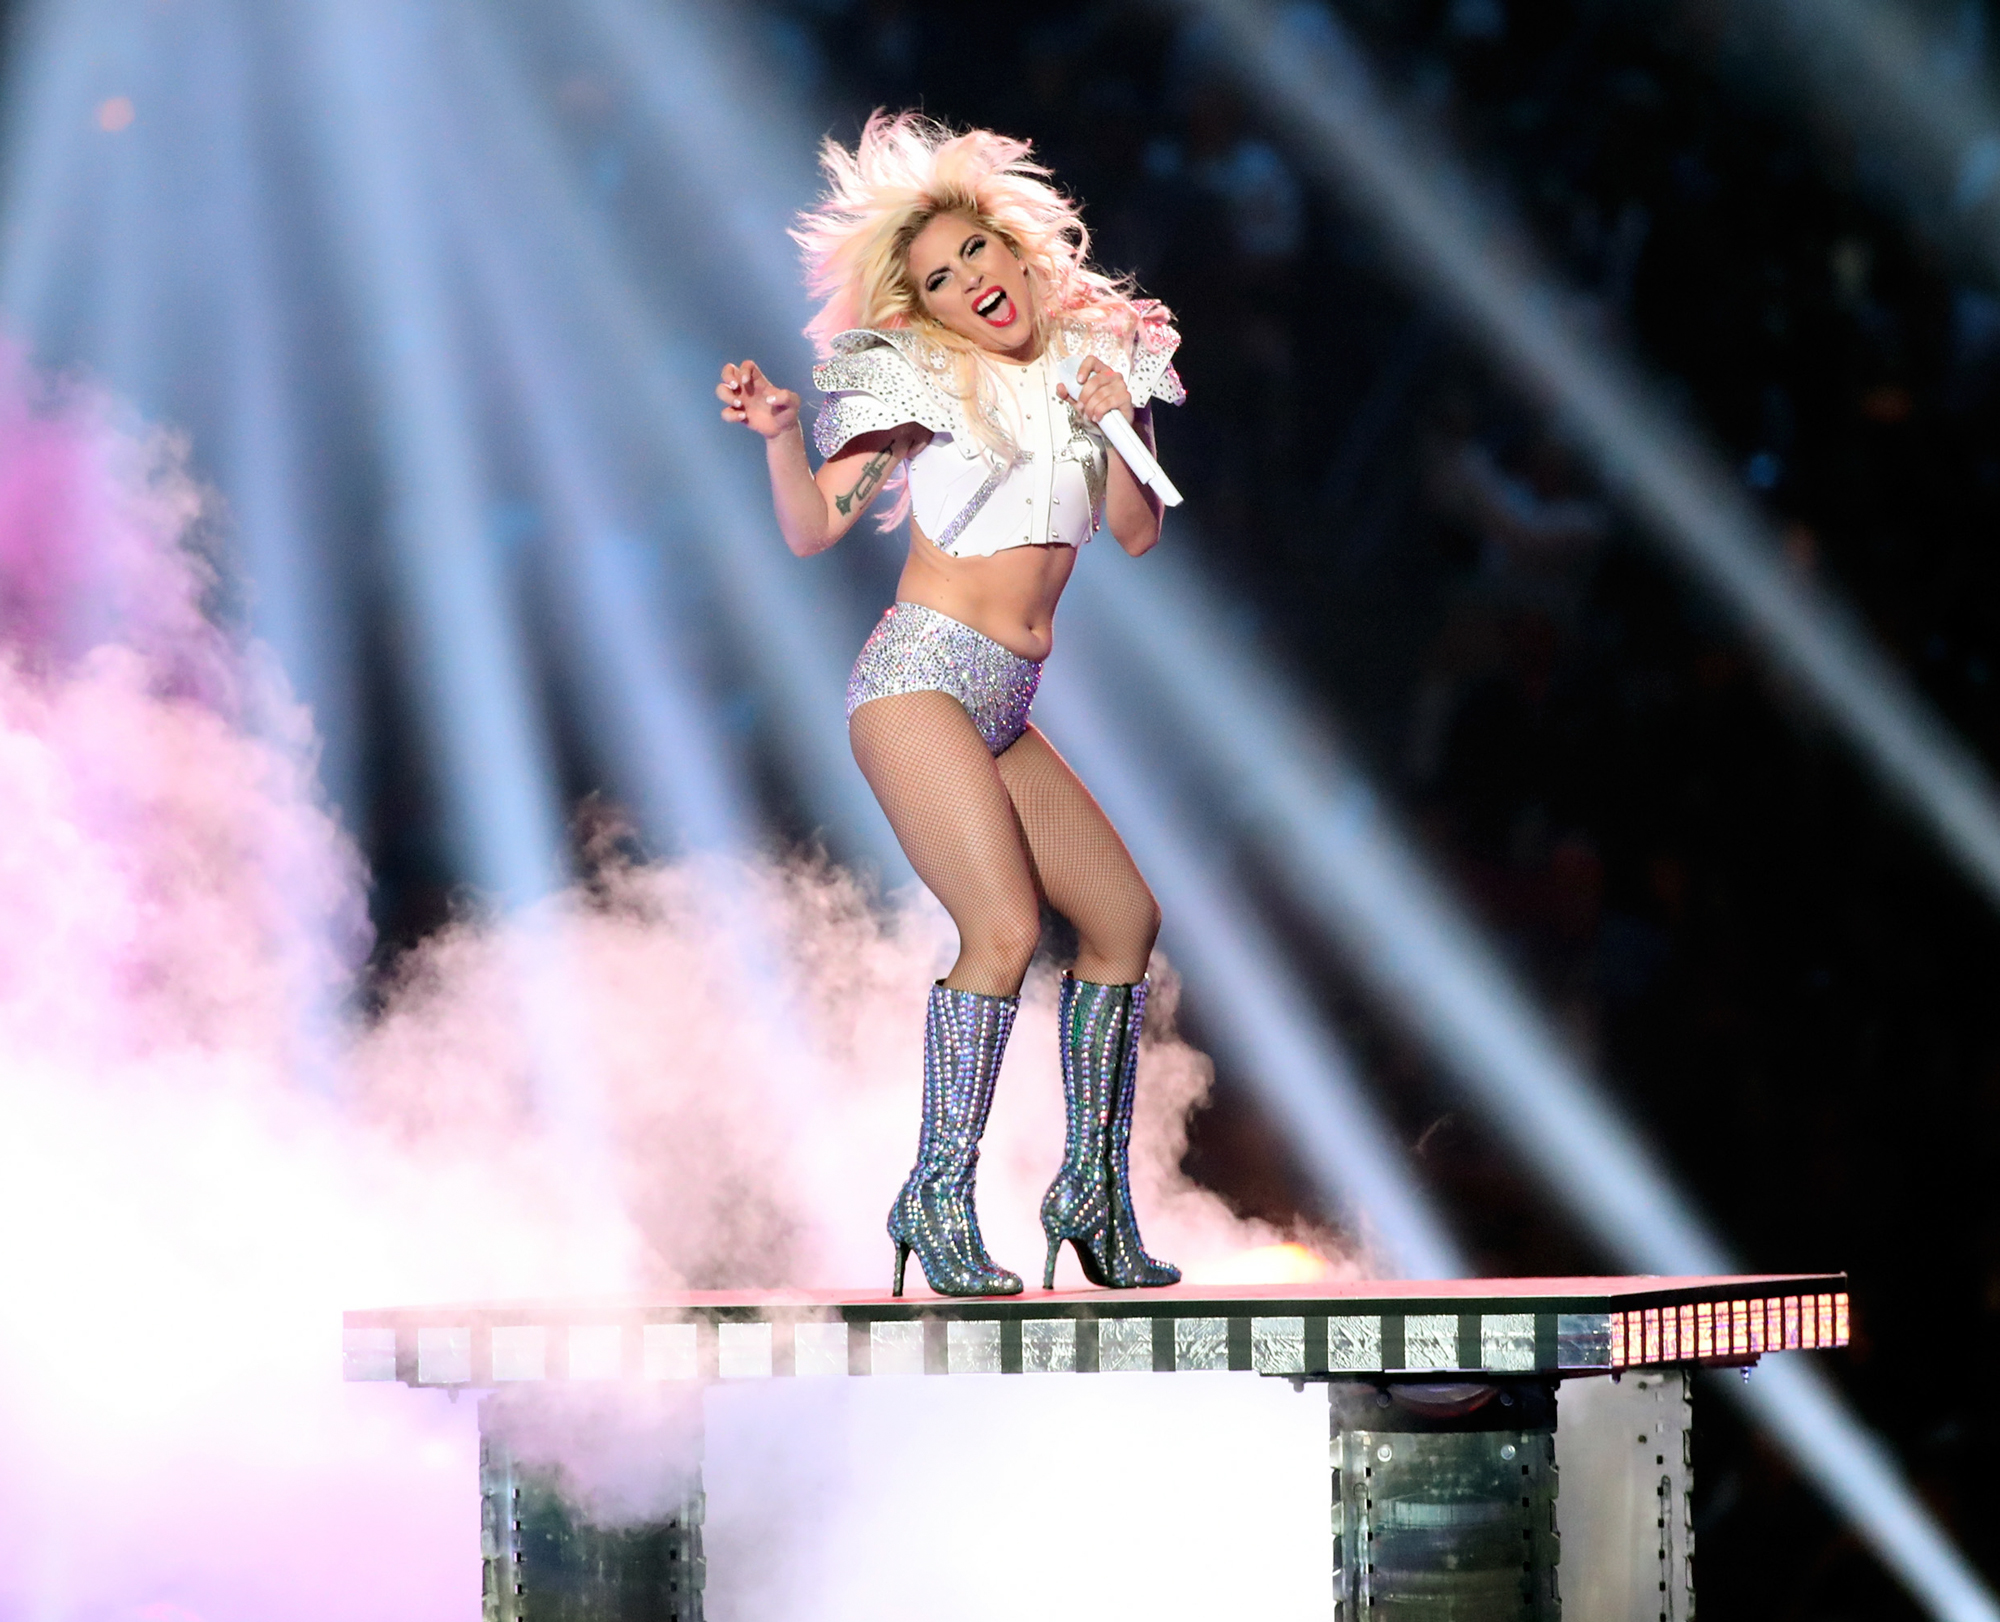 Musician Lady Gaga performs onstage during the Pepsi Zero Sugar Super Bowl LI Halftime Show at NRG Stadium on February 5, 2017 in Houston, Texas.